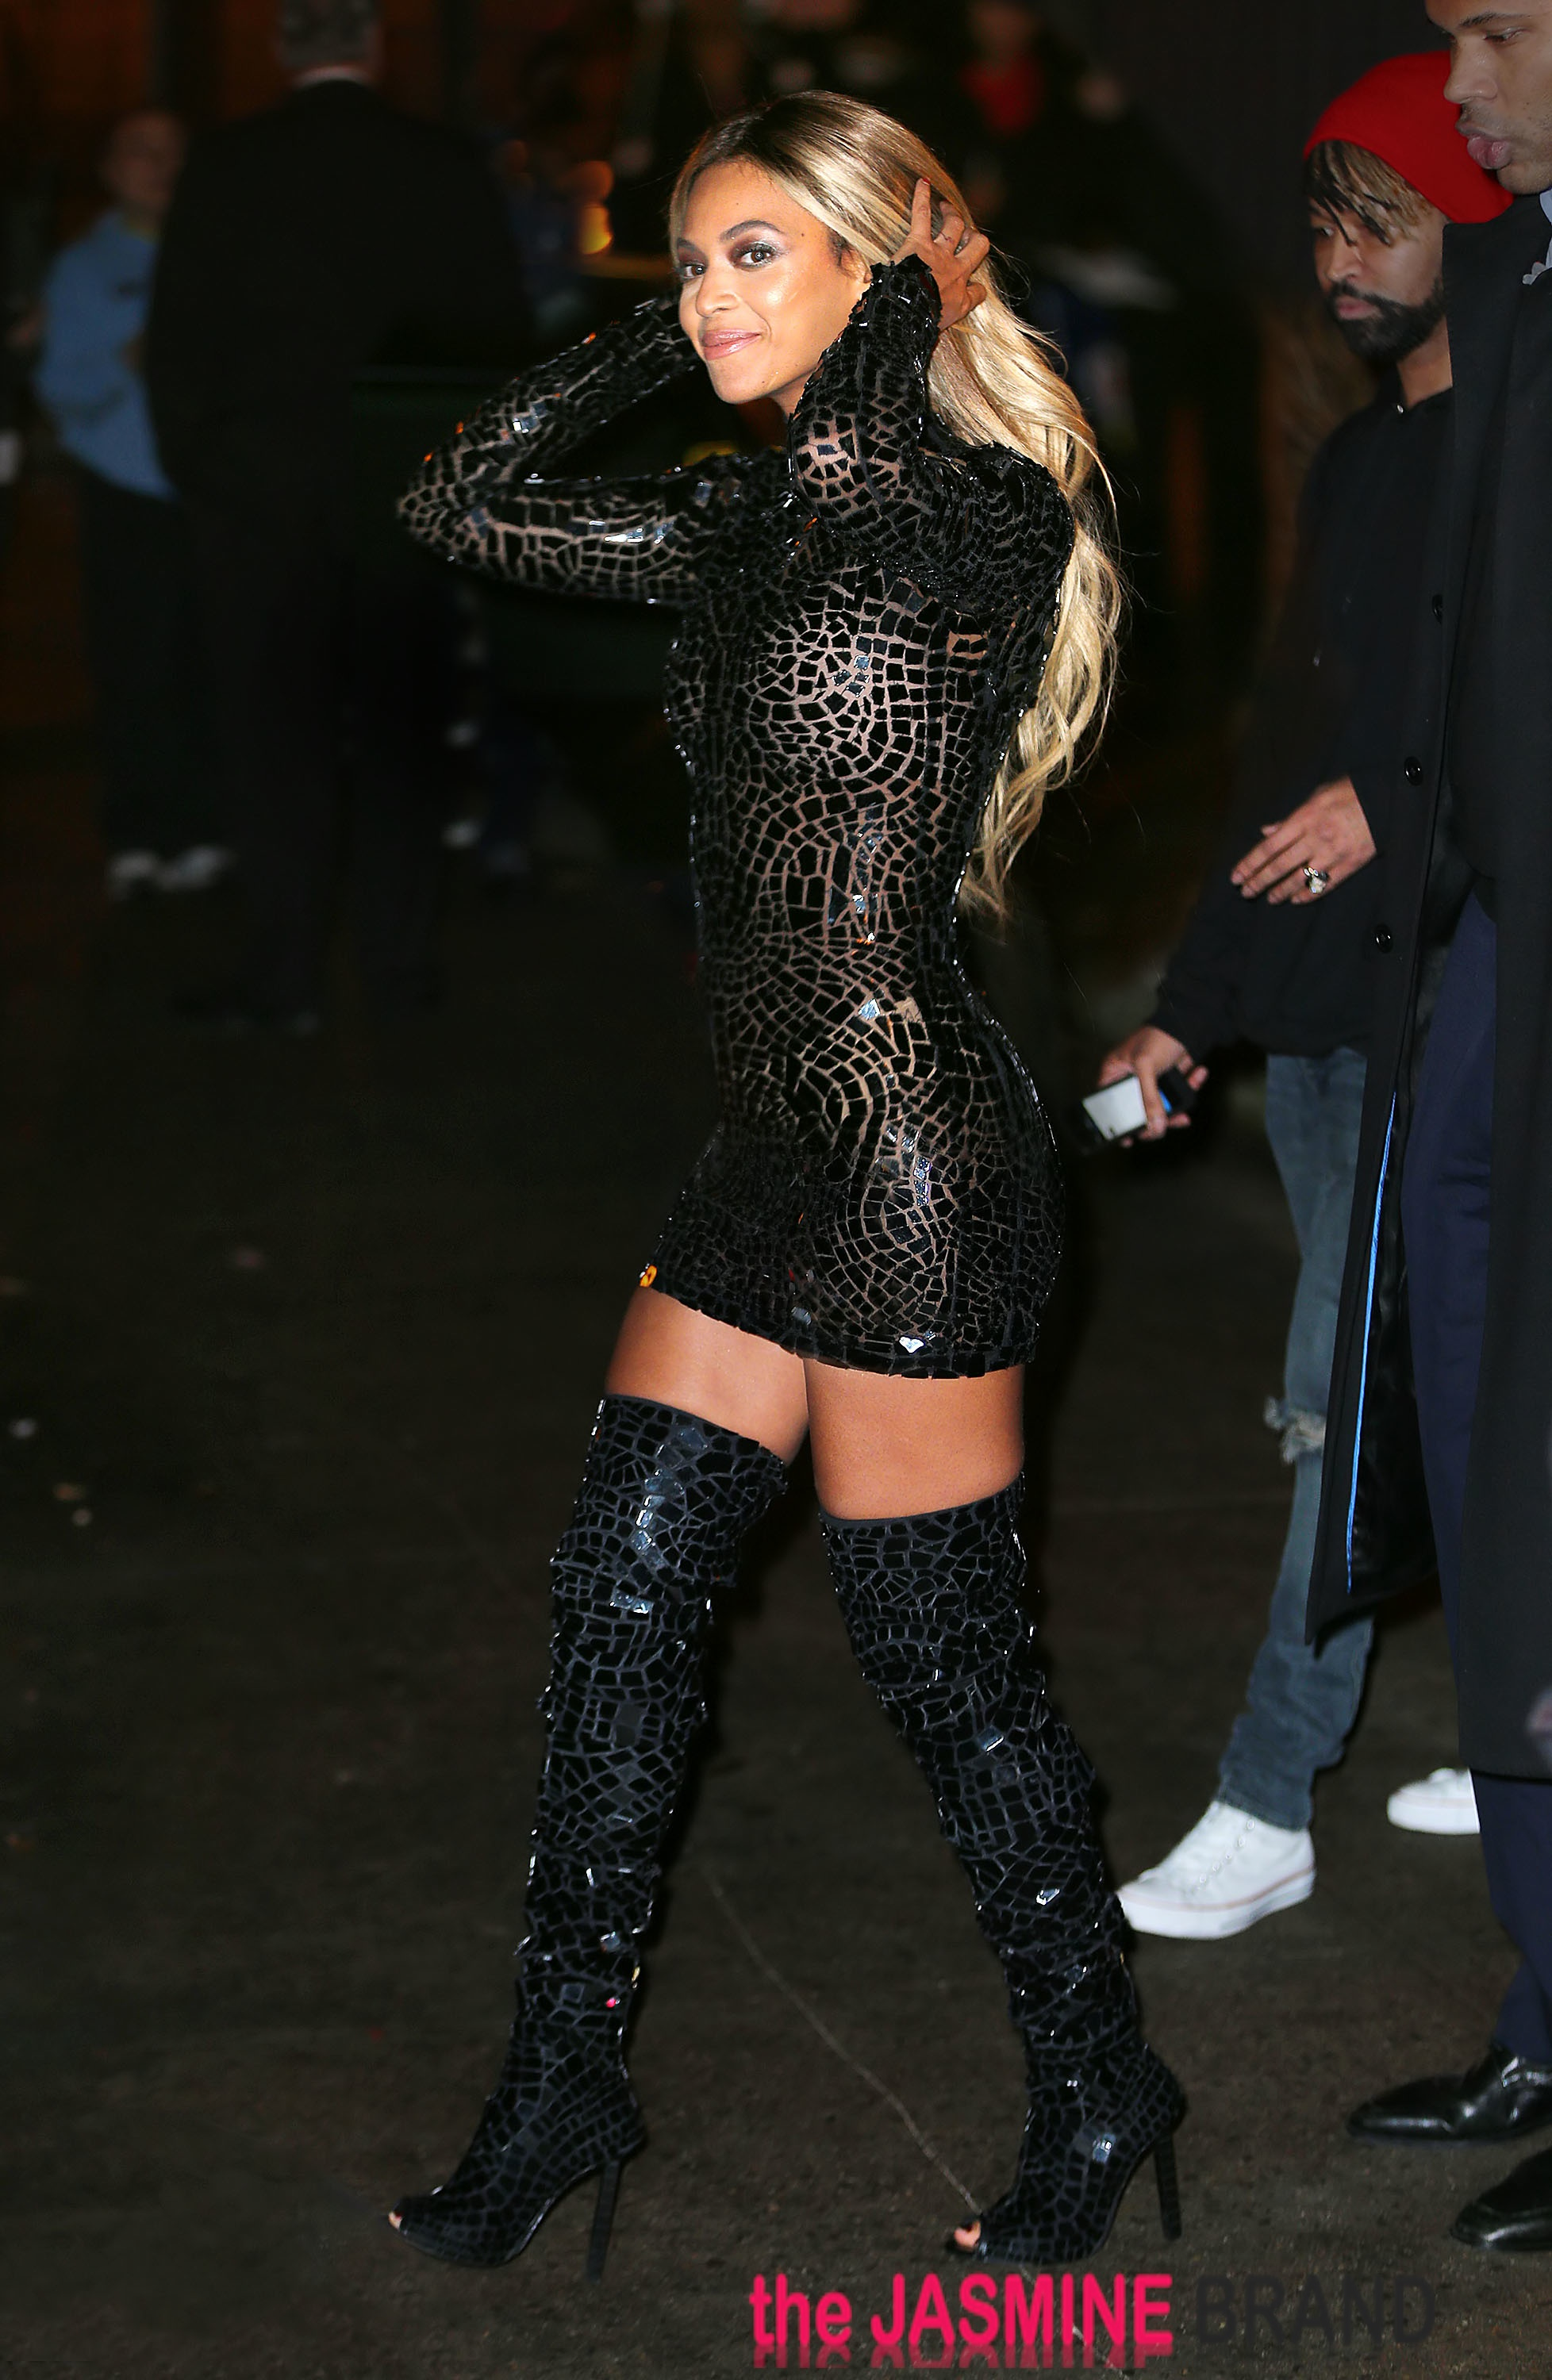 Beyonce Knowles shows off her curves and thin waistline when coming out of the SVA Theater in NYC